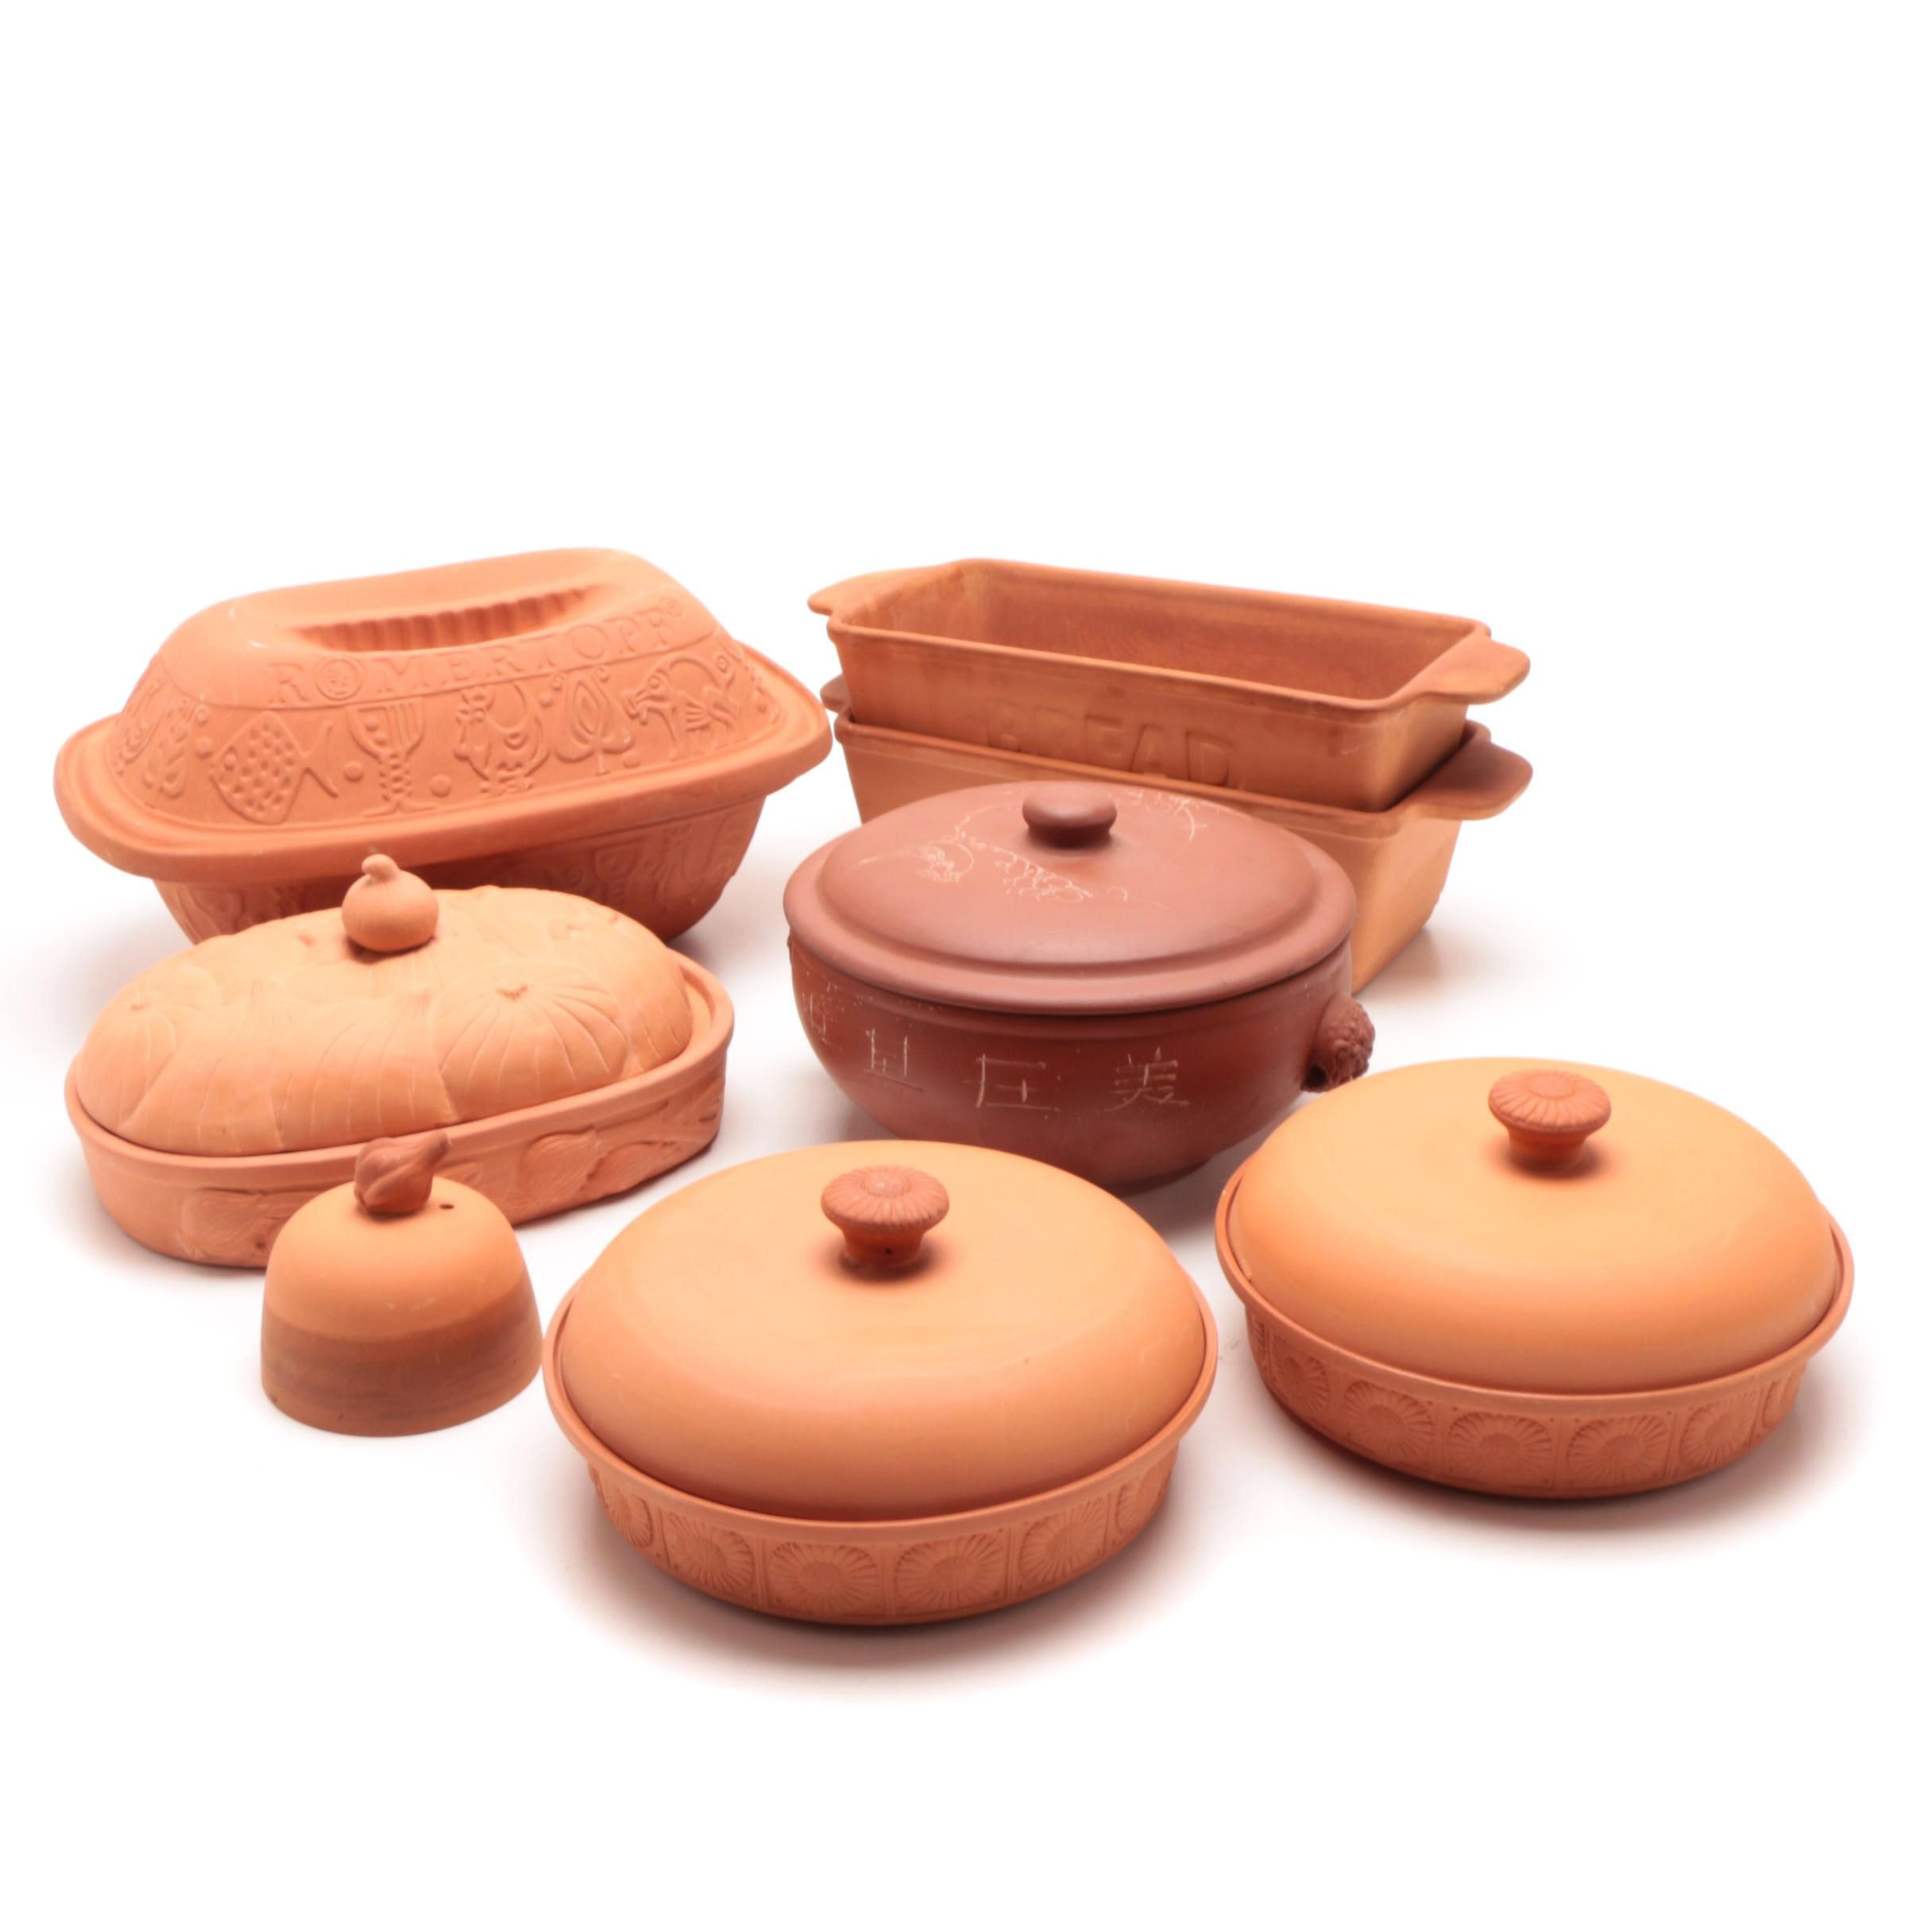 Group of Terracotta Bakeware